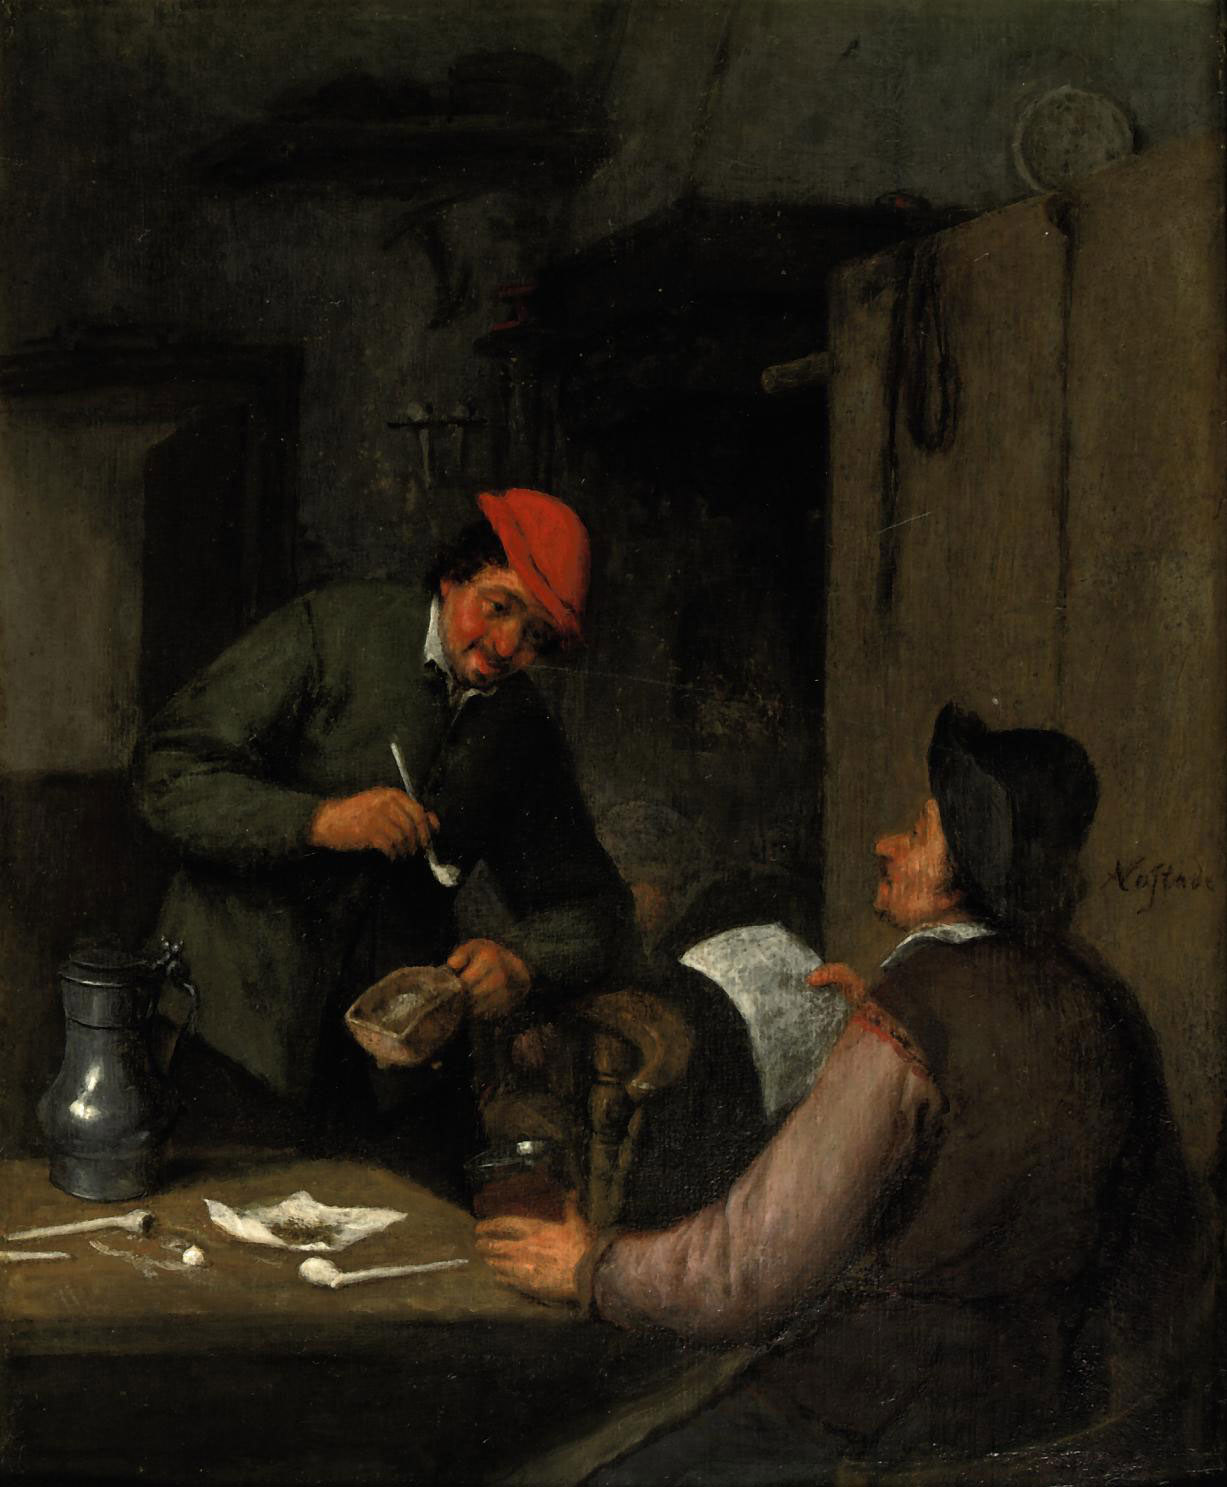 Two peasants smoking, drinking and reading in an interior